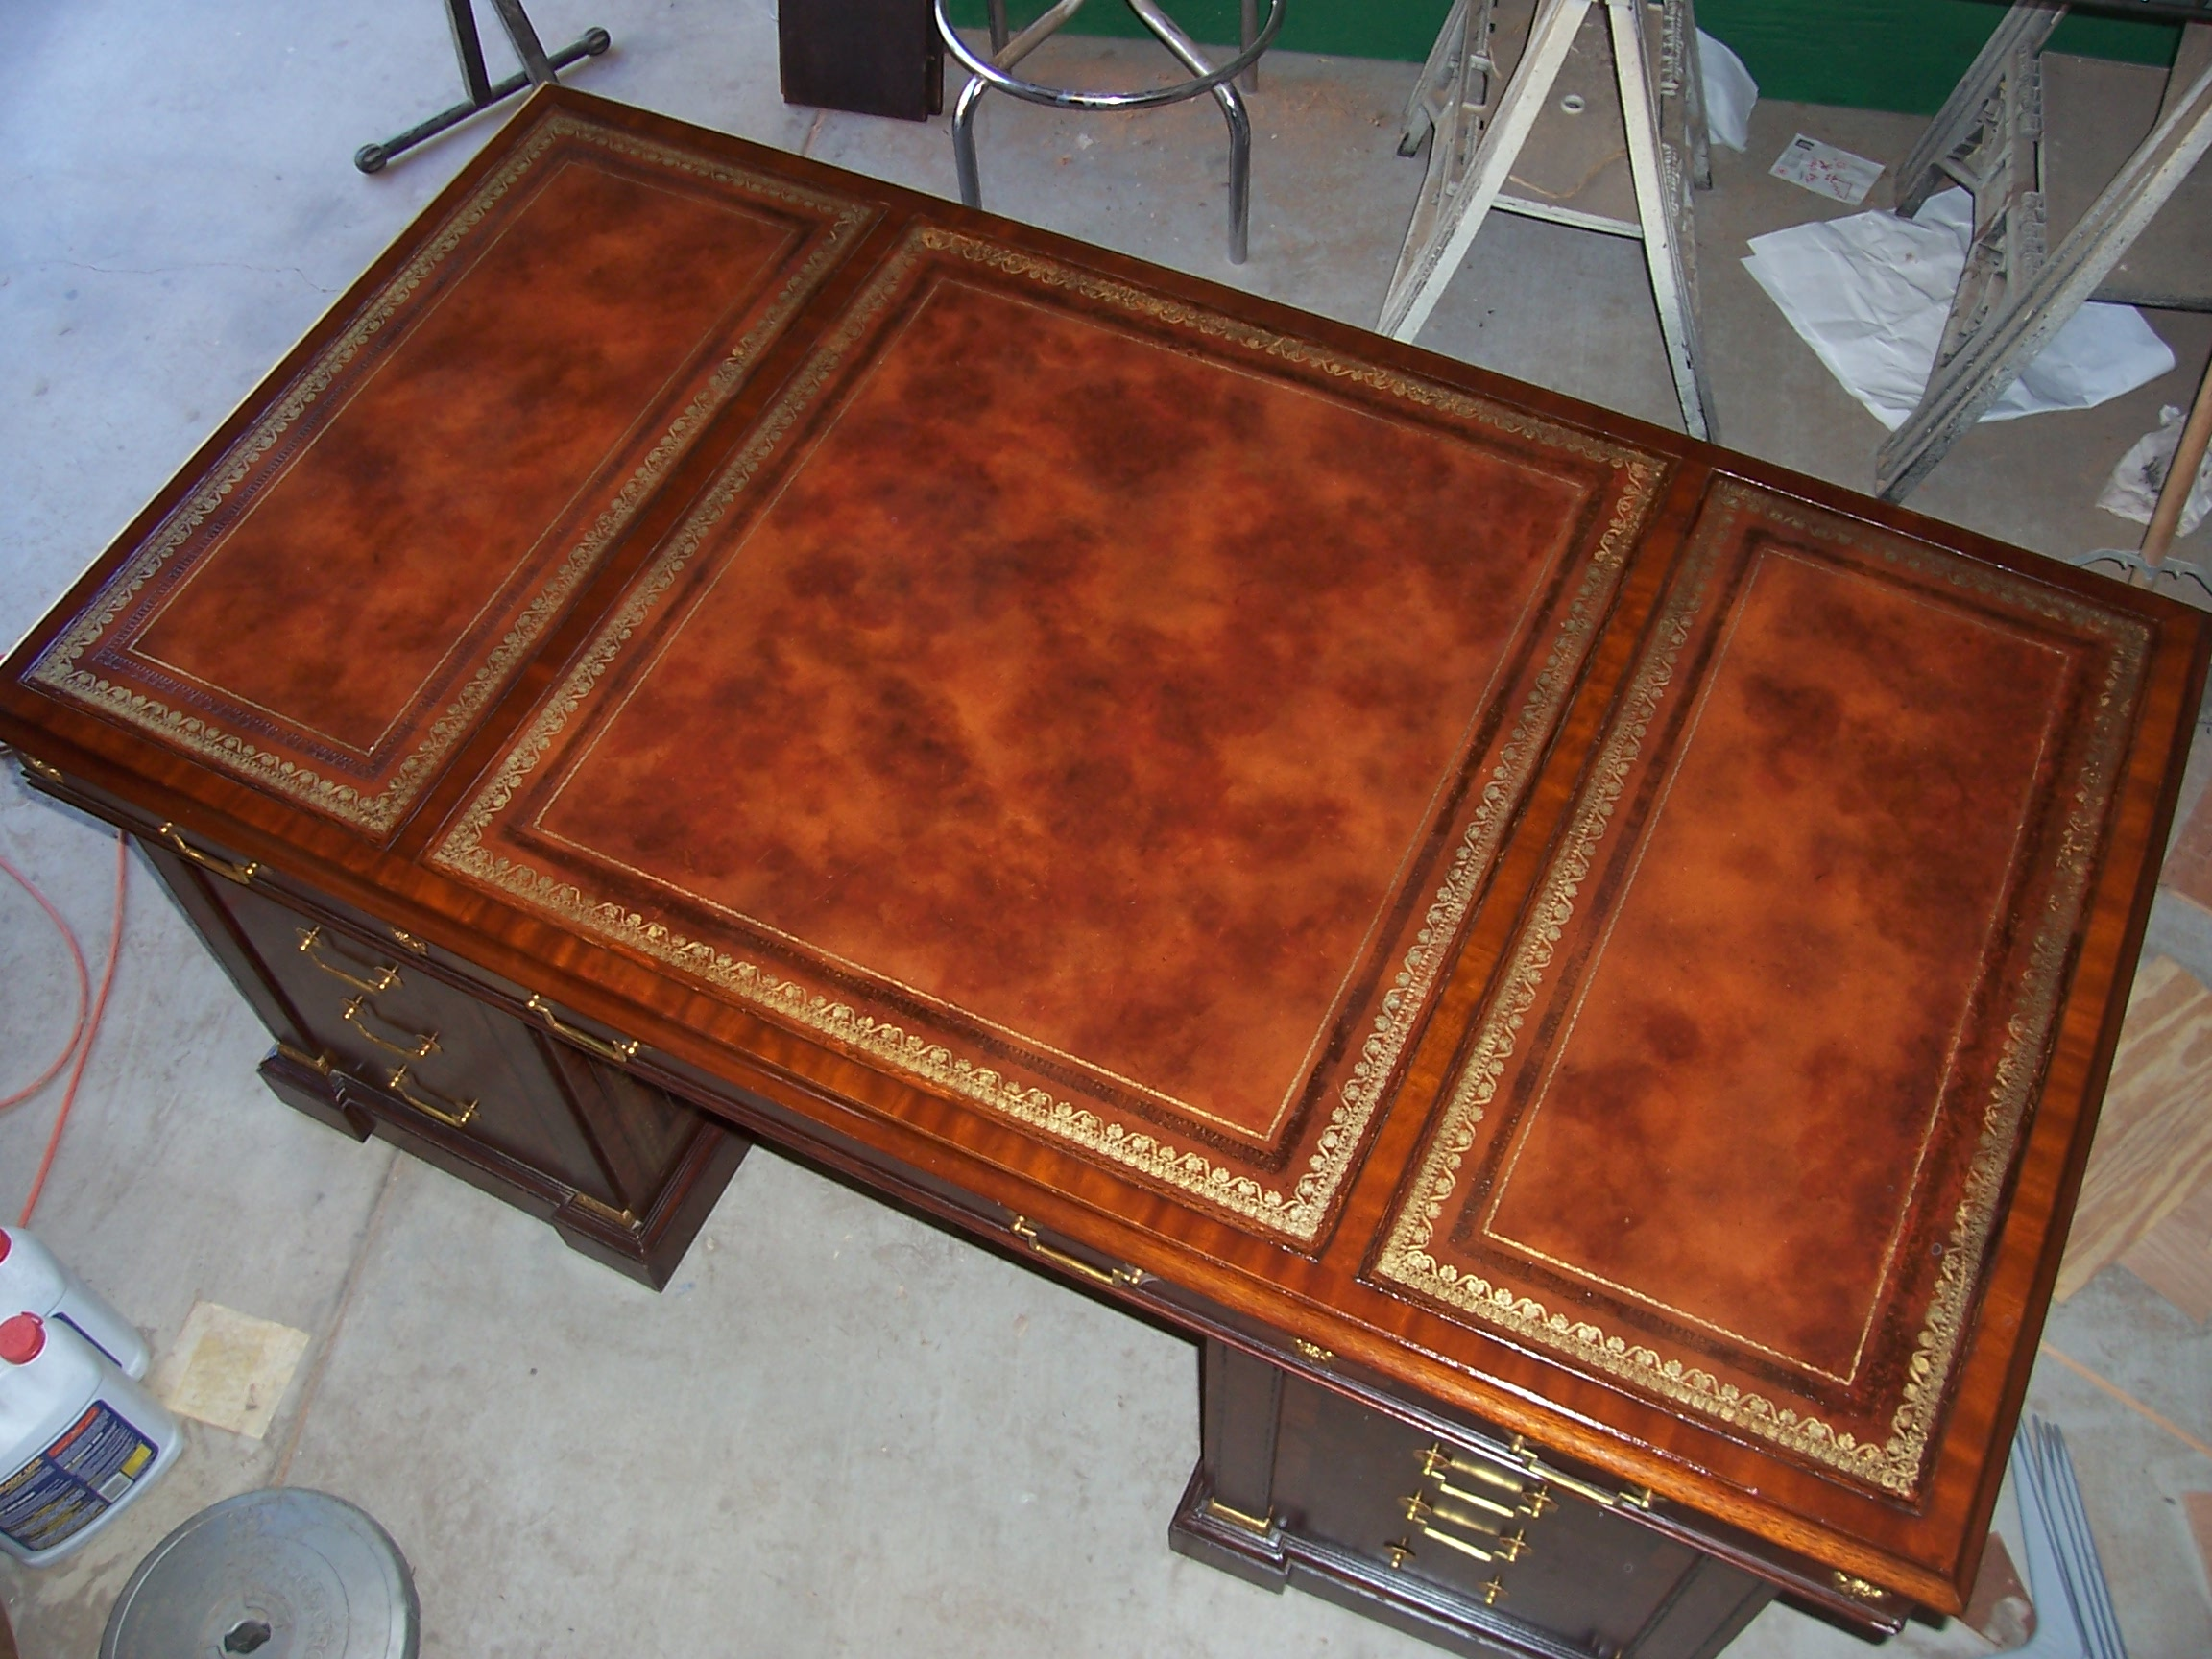 Furniture refinishing furniture repair service furniture furniture refinishing furniture repair service furniture restorers furniture refinishers antique restoration los angeles orange county geotapseo Images